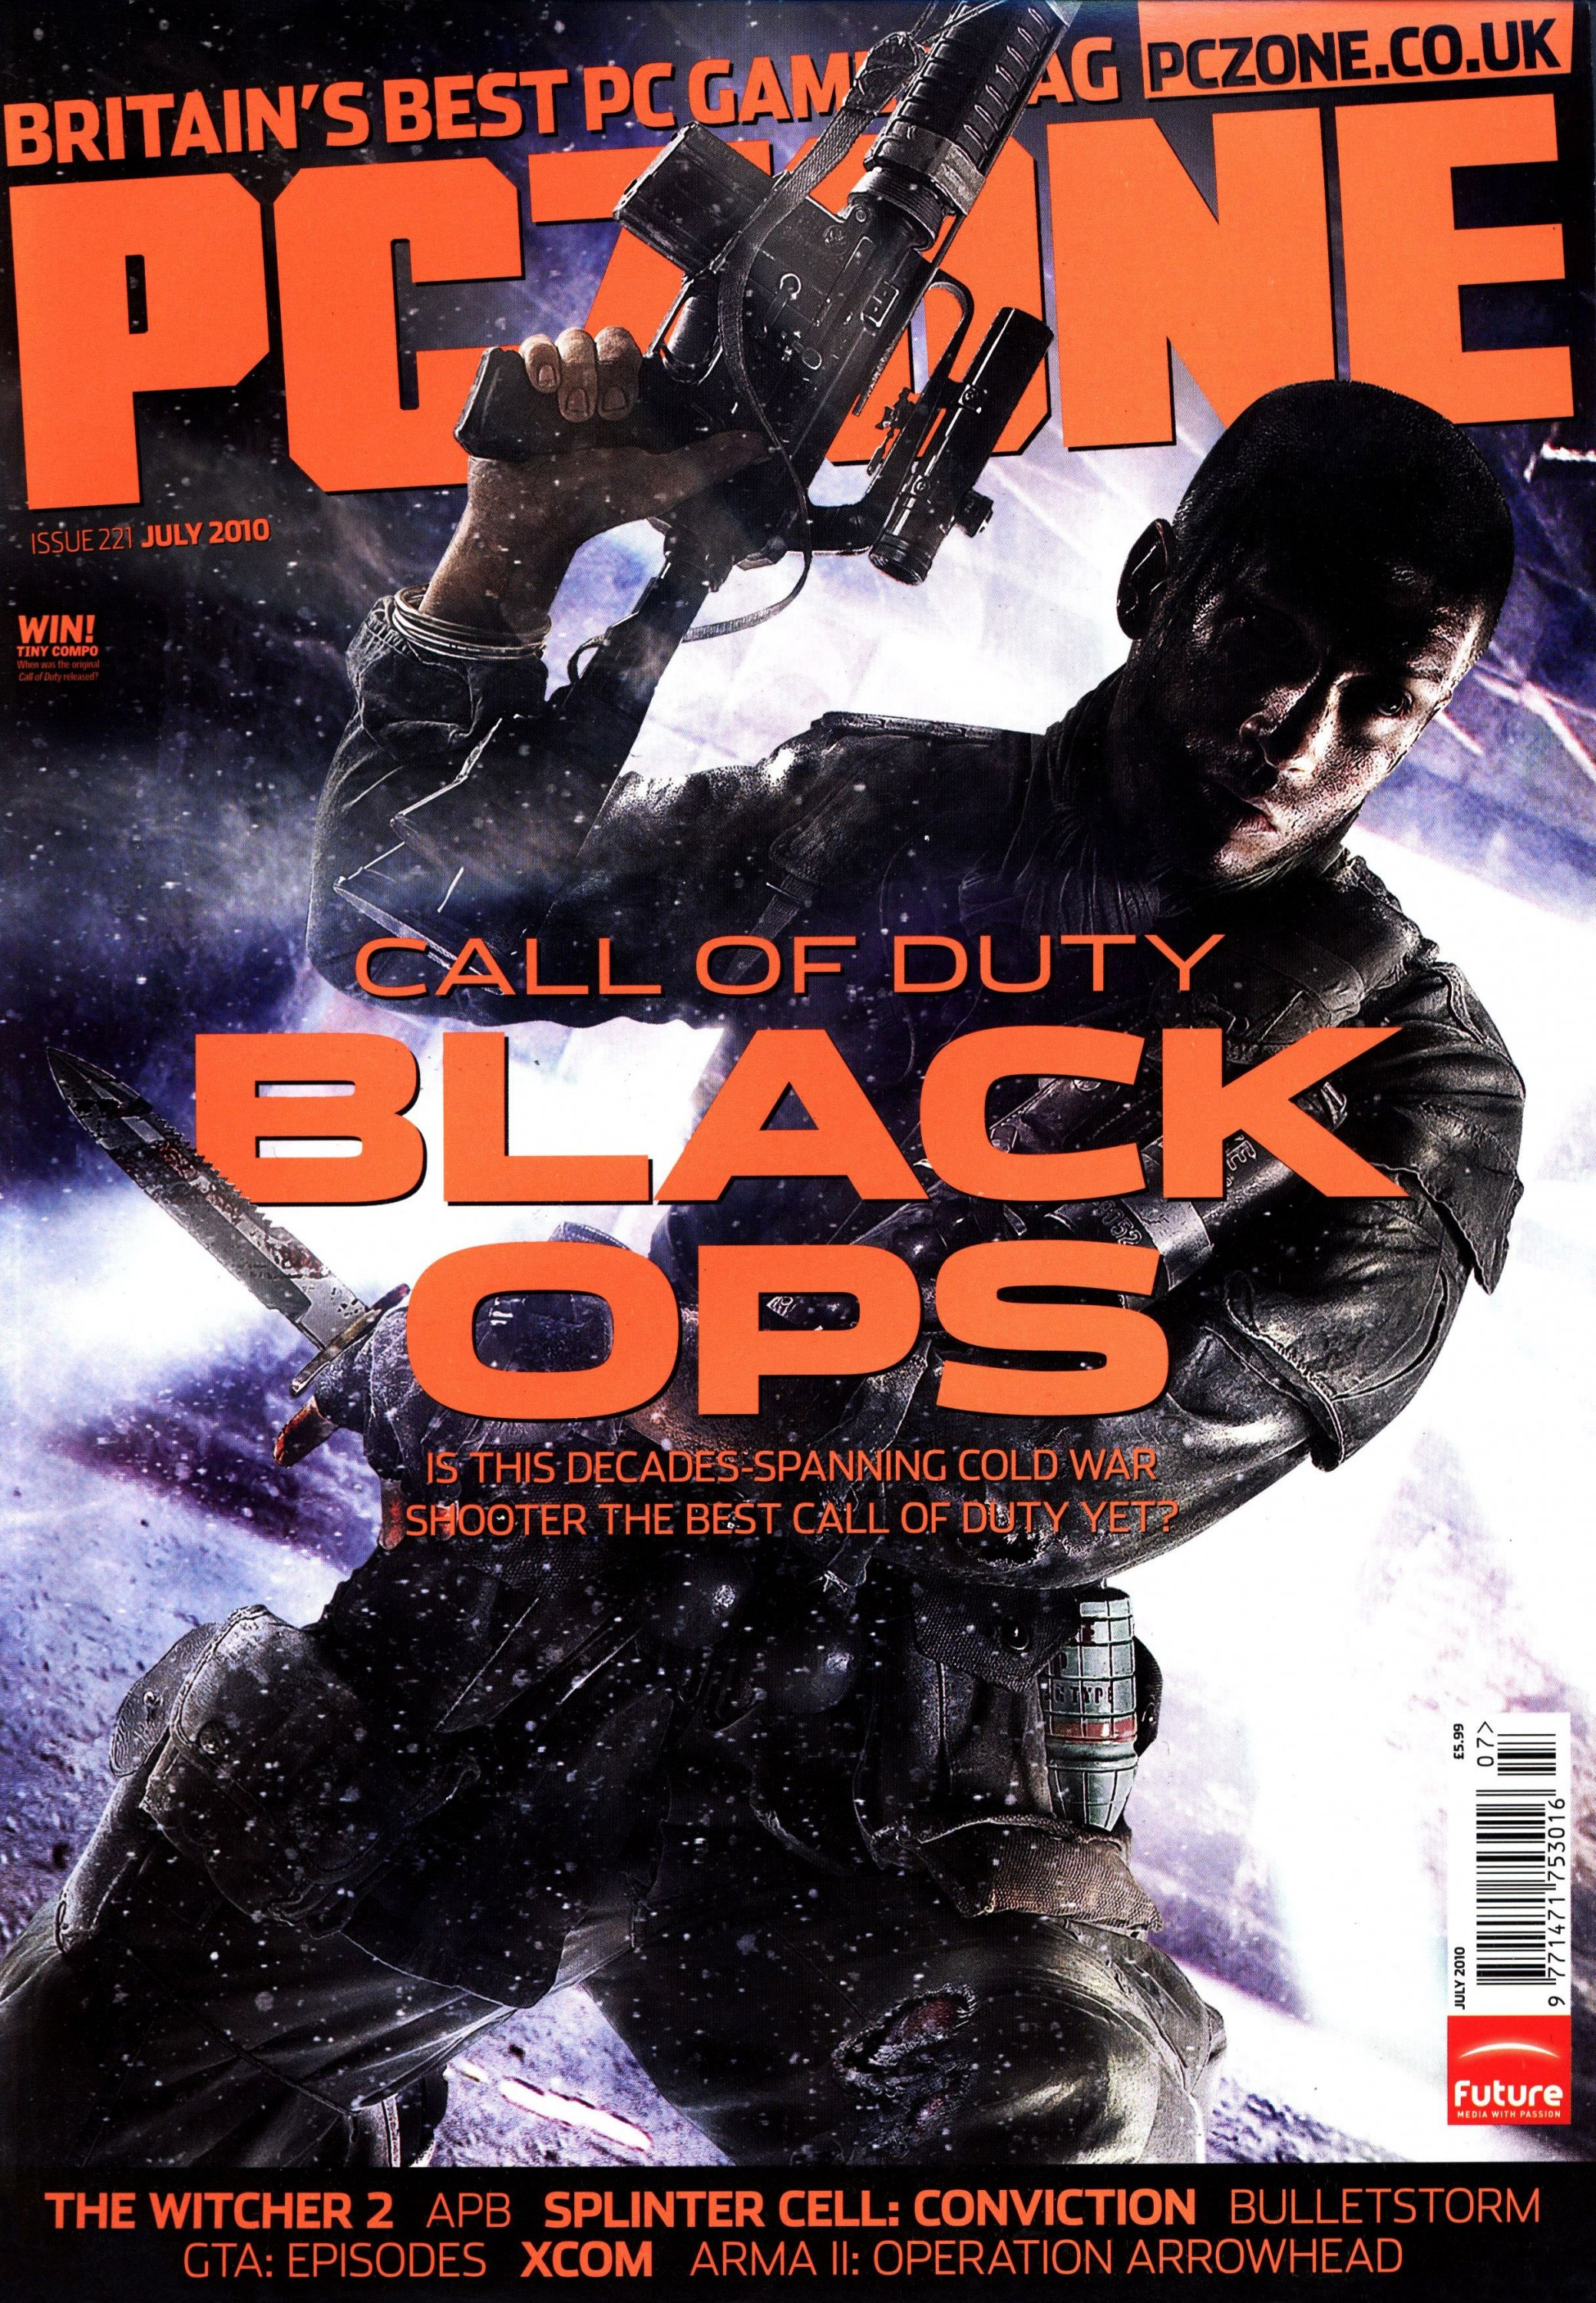 PC Zone Issue 221 (July 2010)